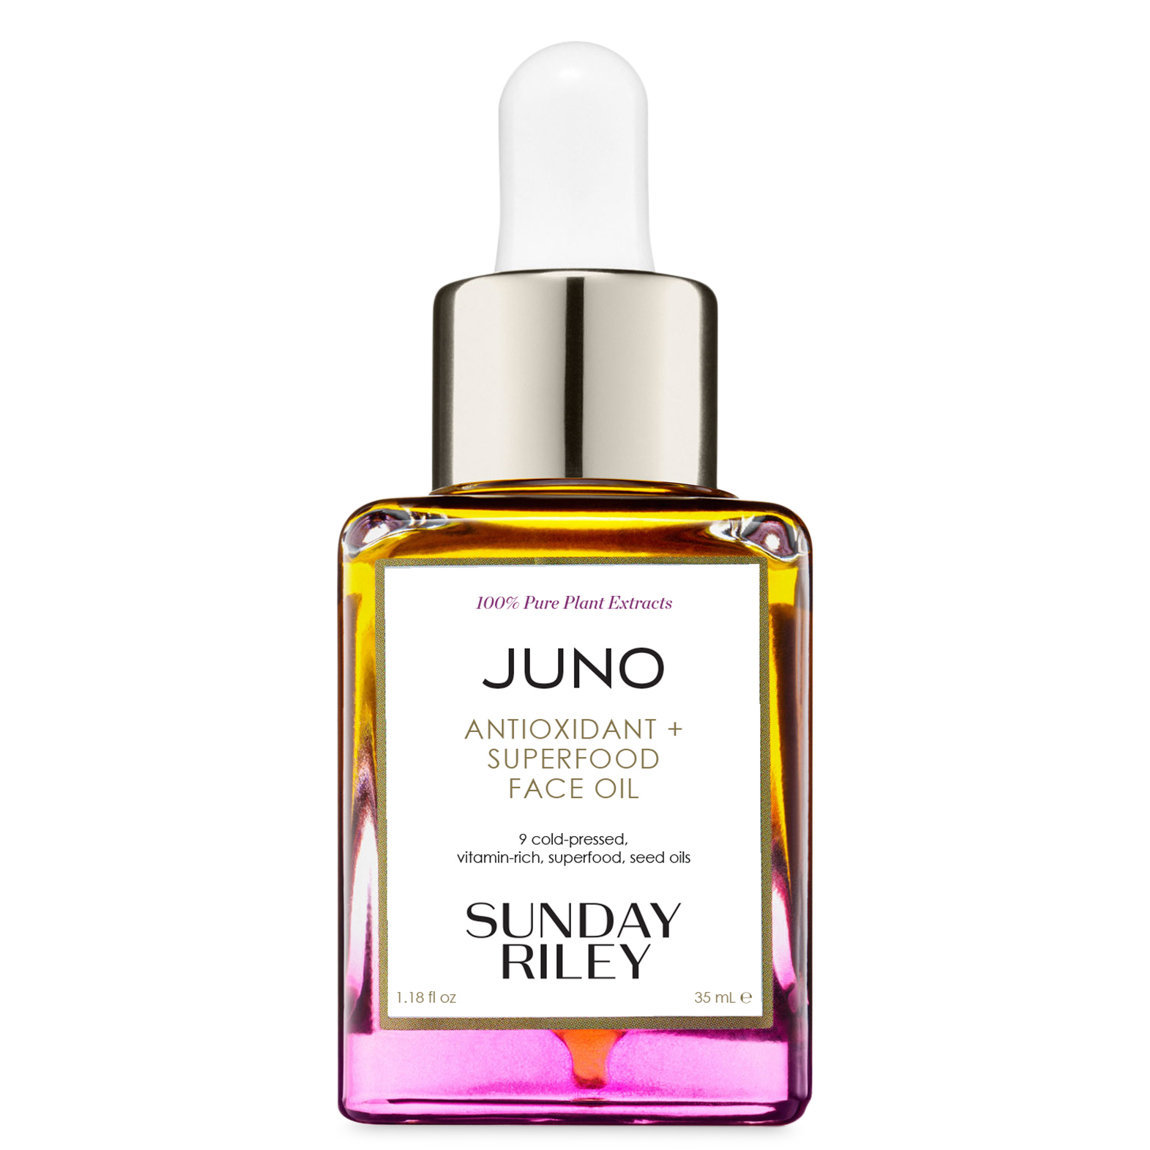 Sunday Riley Juno Antioxidant + Superfood Face Oil 35 ml alternative view 1 - product swatch.